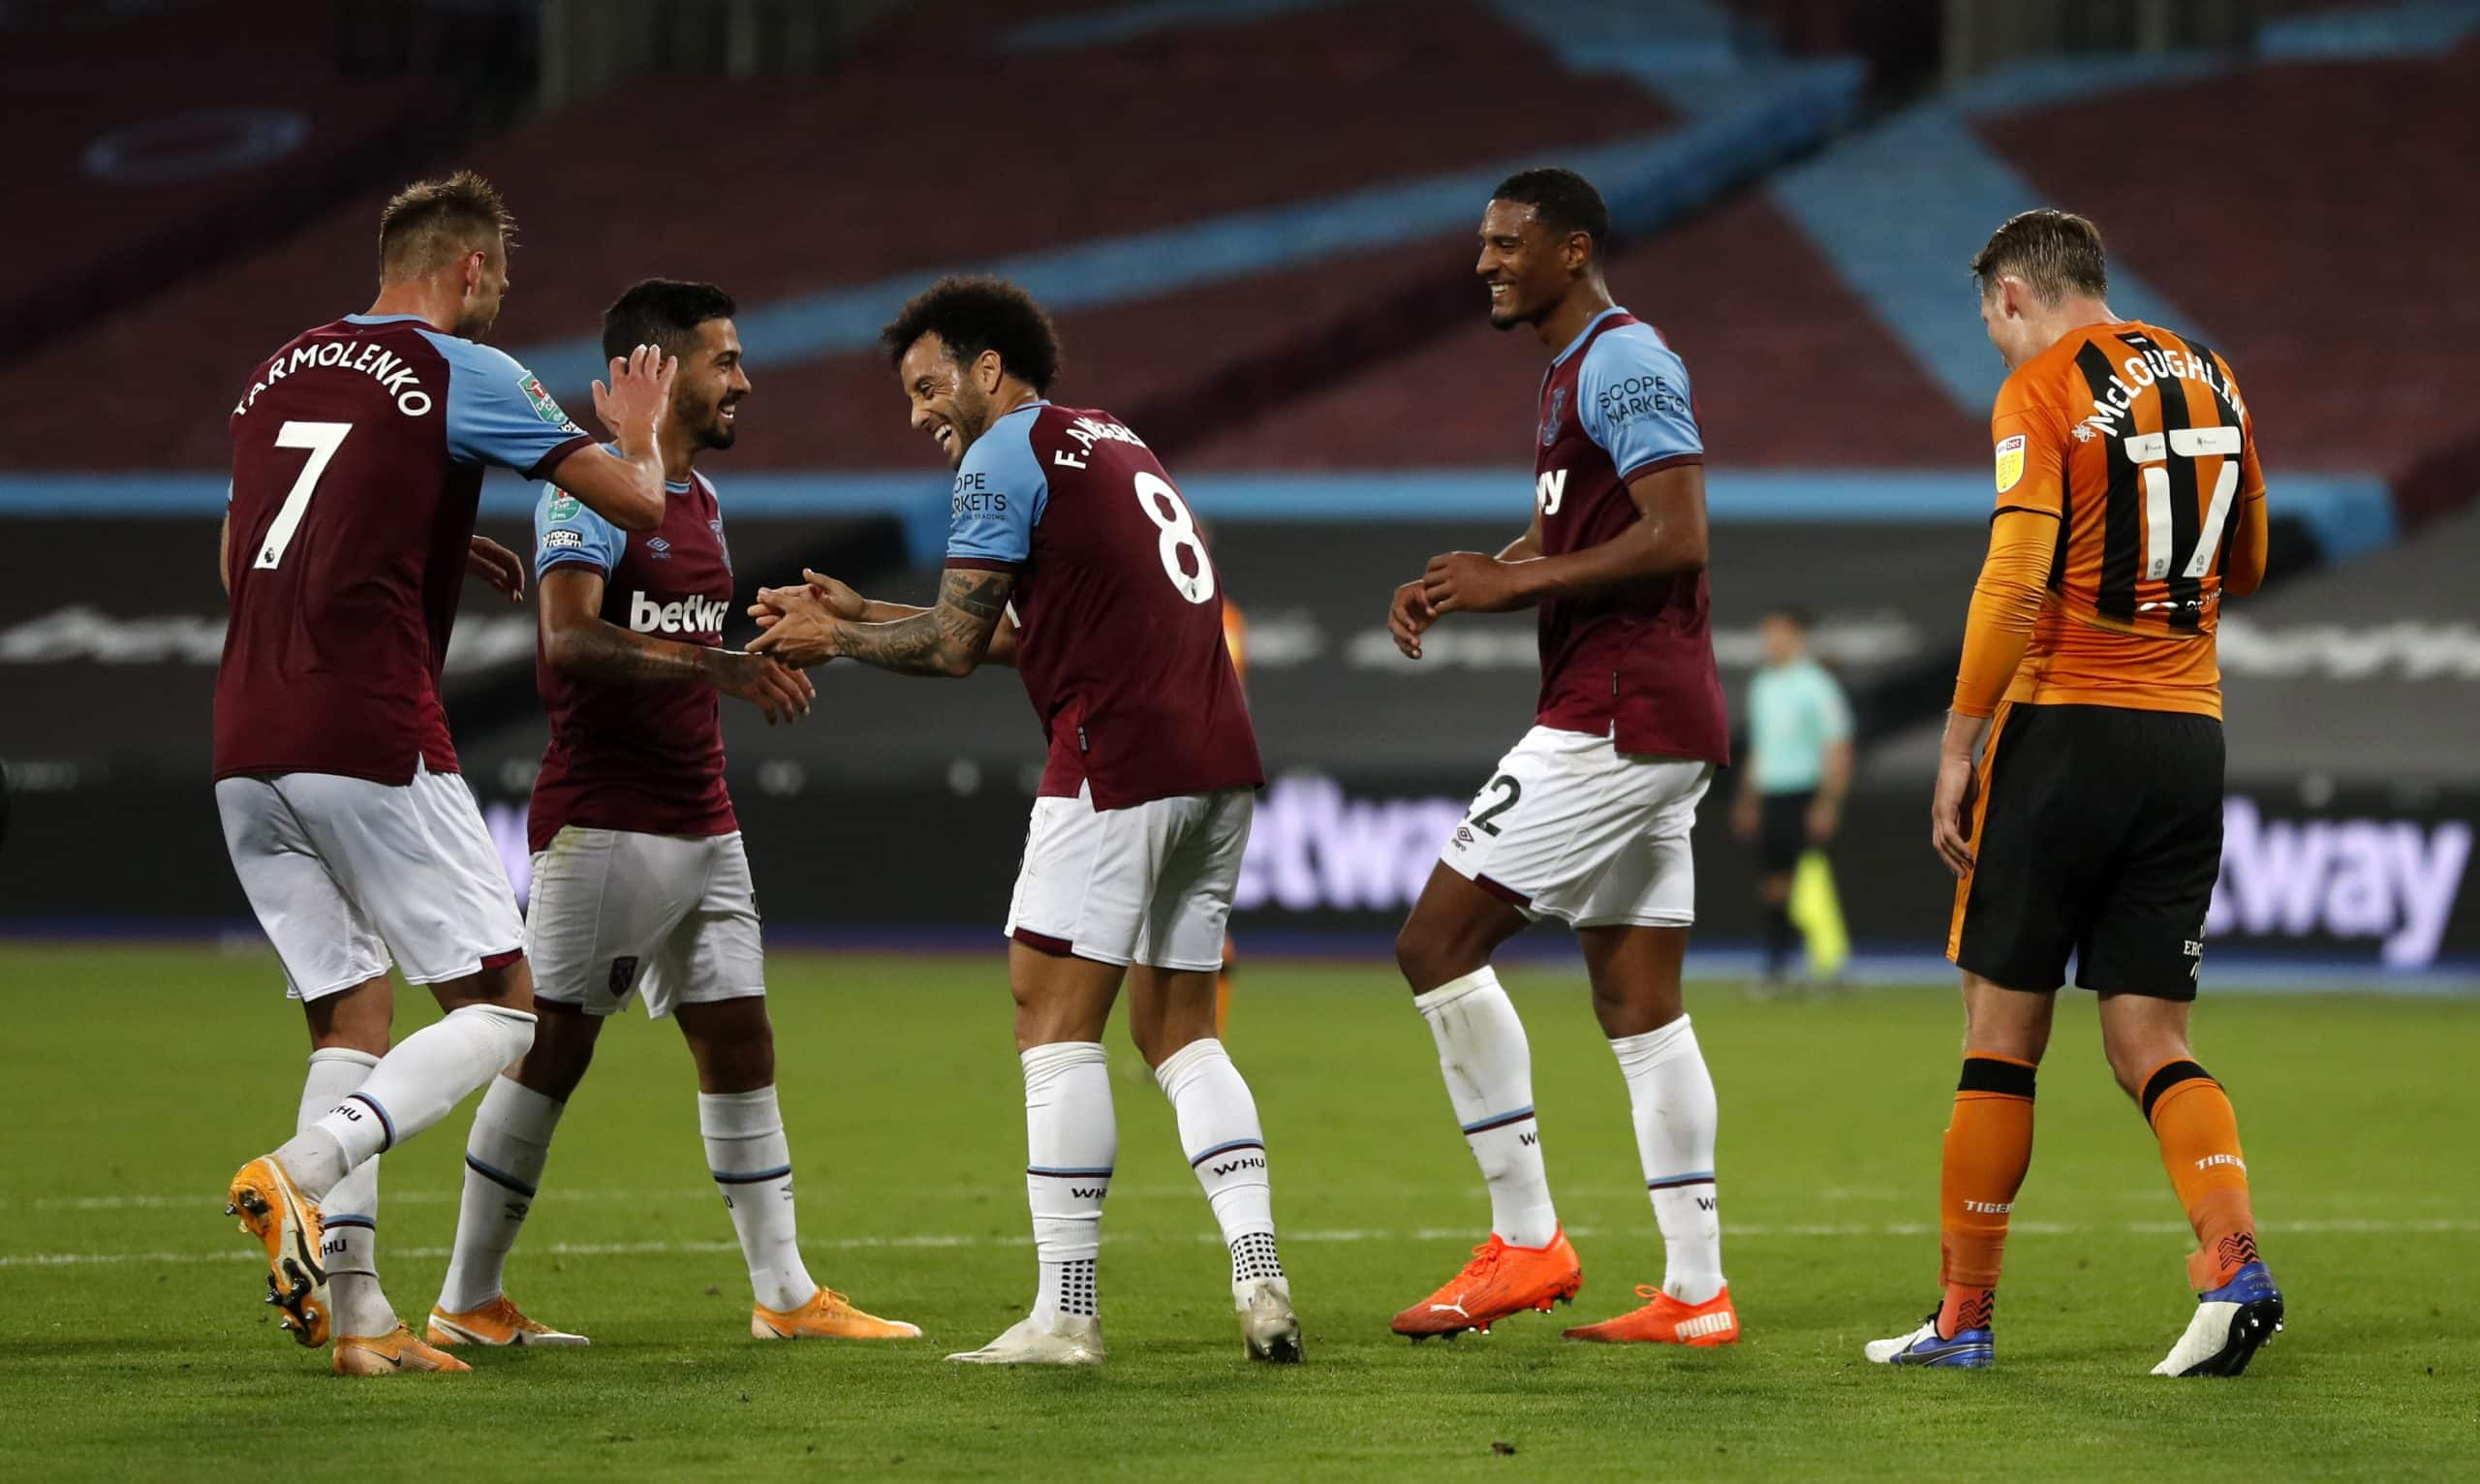 Sheffield United vs West Ham betting tips: Premier League preview, predictions & odds